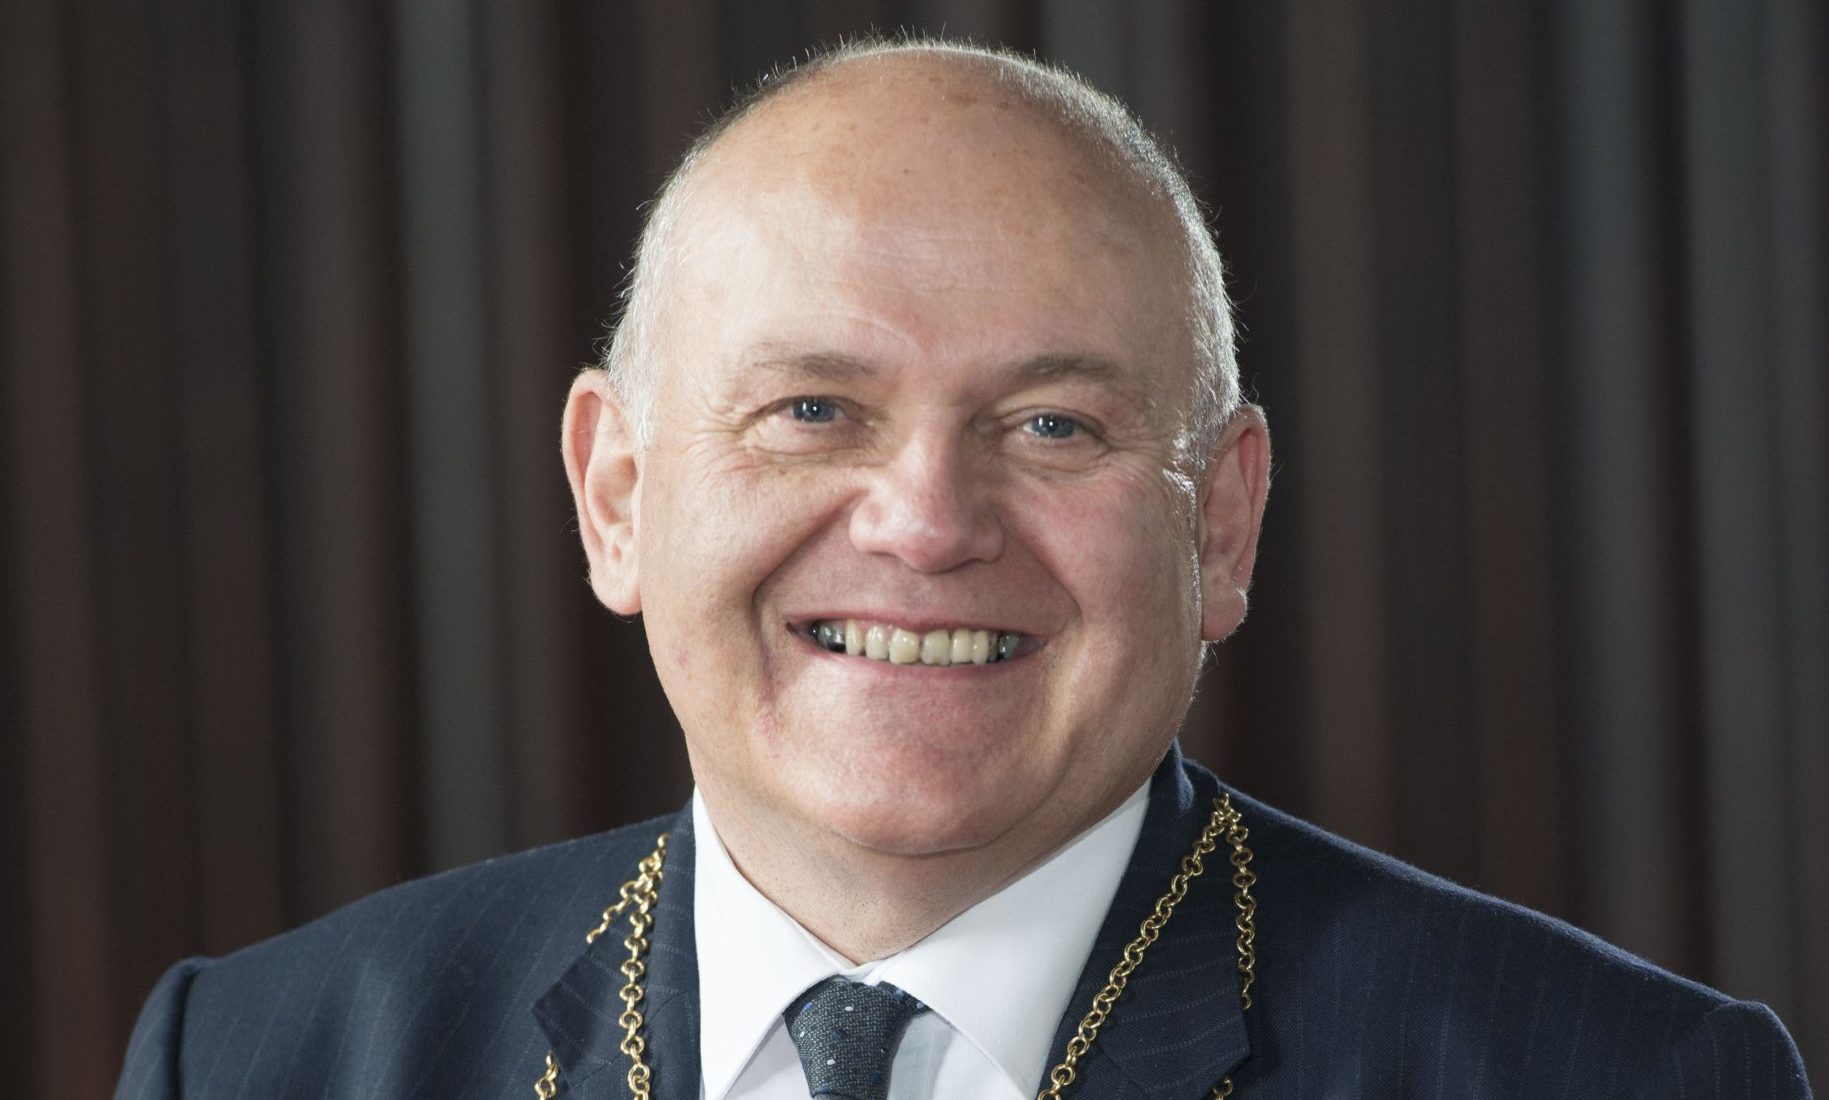 Lord Provost Barney Crockett wants the fund to reach even more charities.